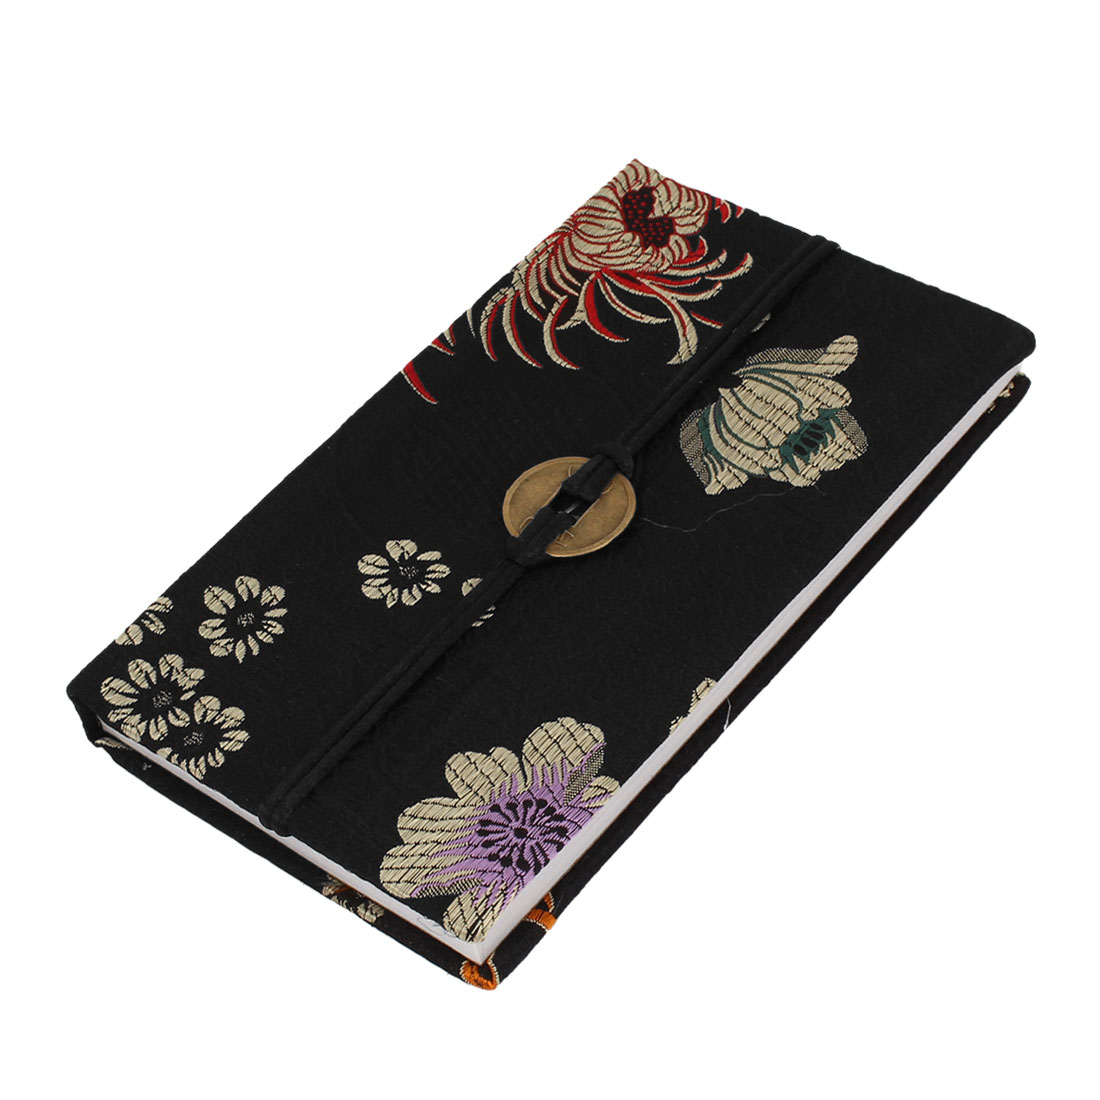 Chrysanthemum Print Black Brocade Surface Cover 60 Pages Record Notebook Diary